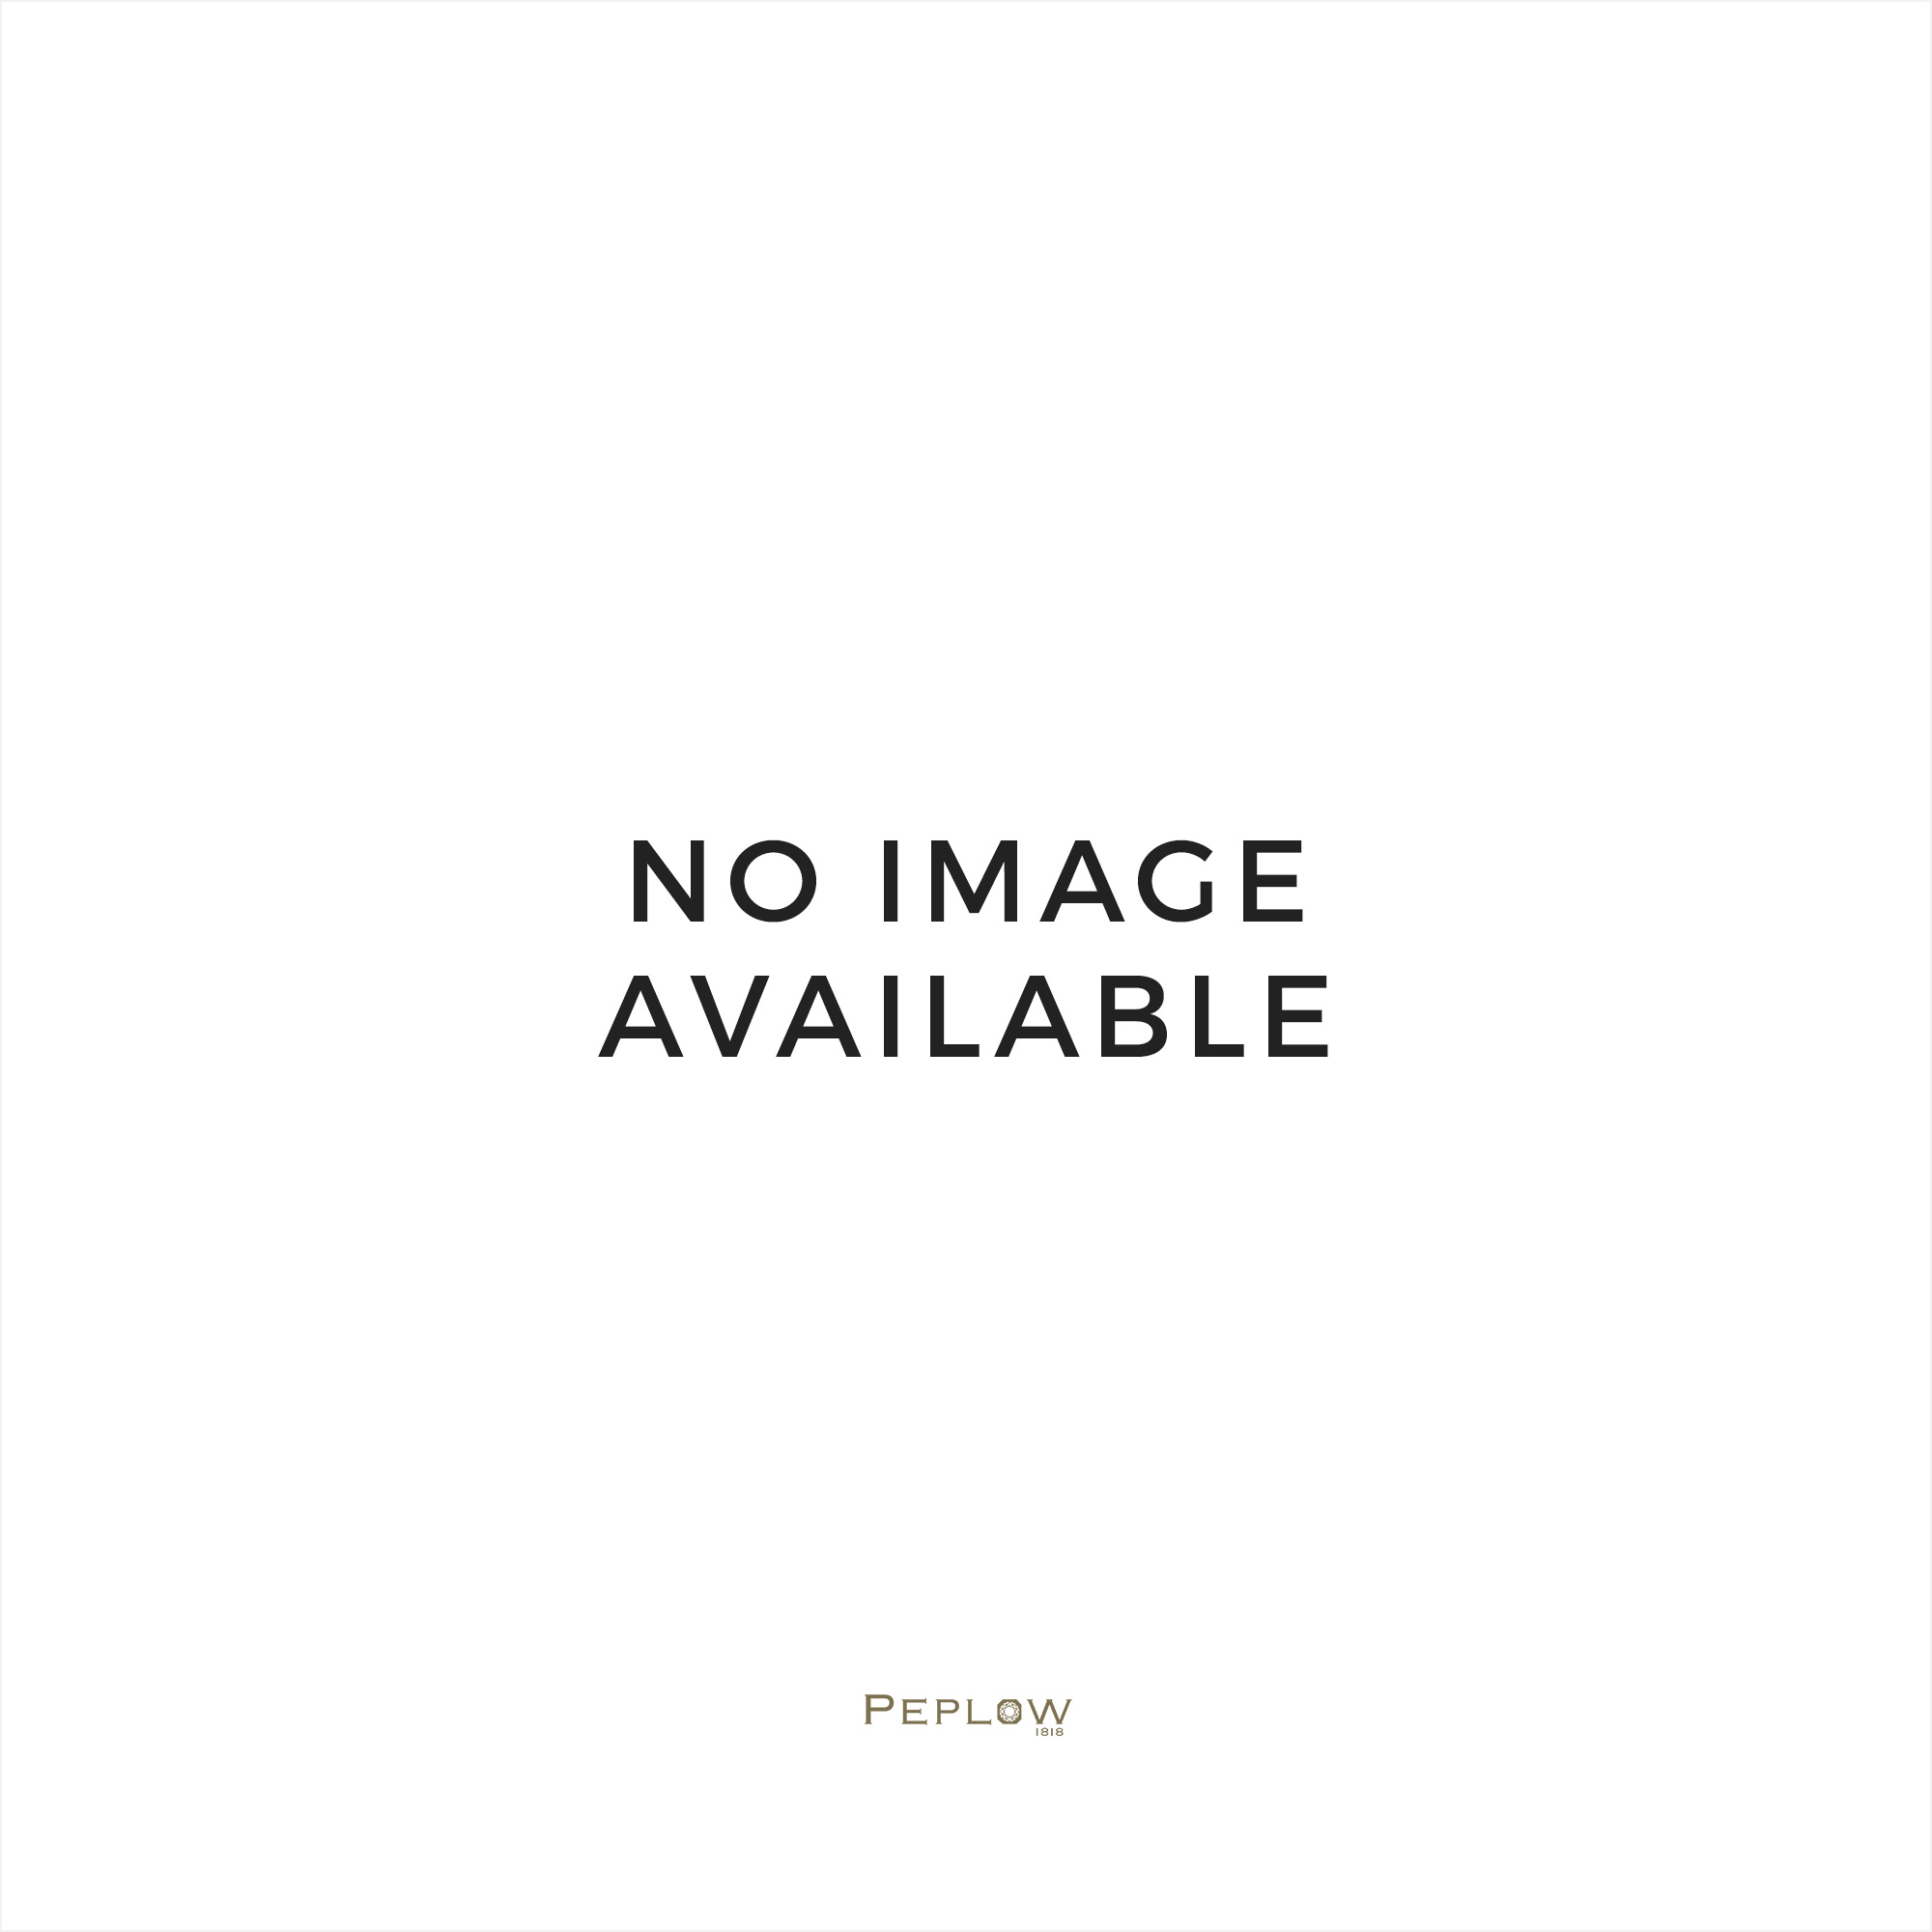 Citizen Watches CITIZEN LADIES ECO DRIVE SILHOUETTE CRYSTAL WATCH EX1480-58E